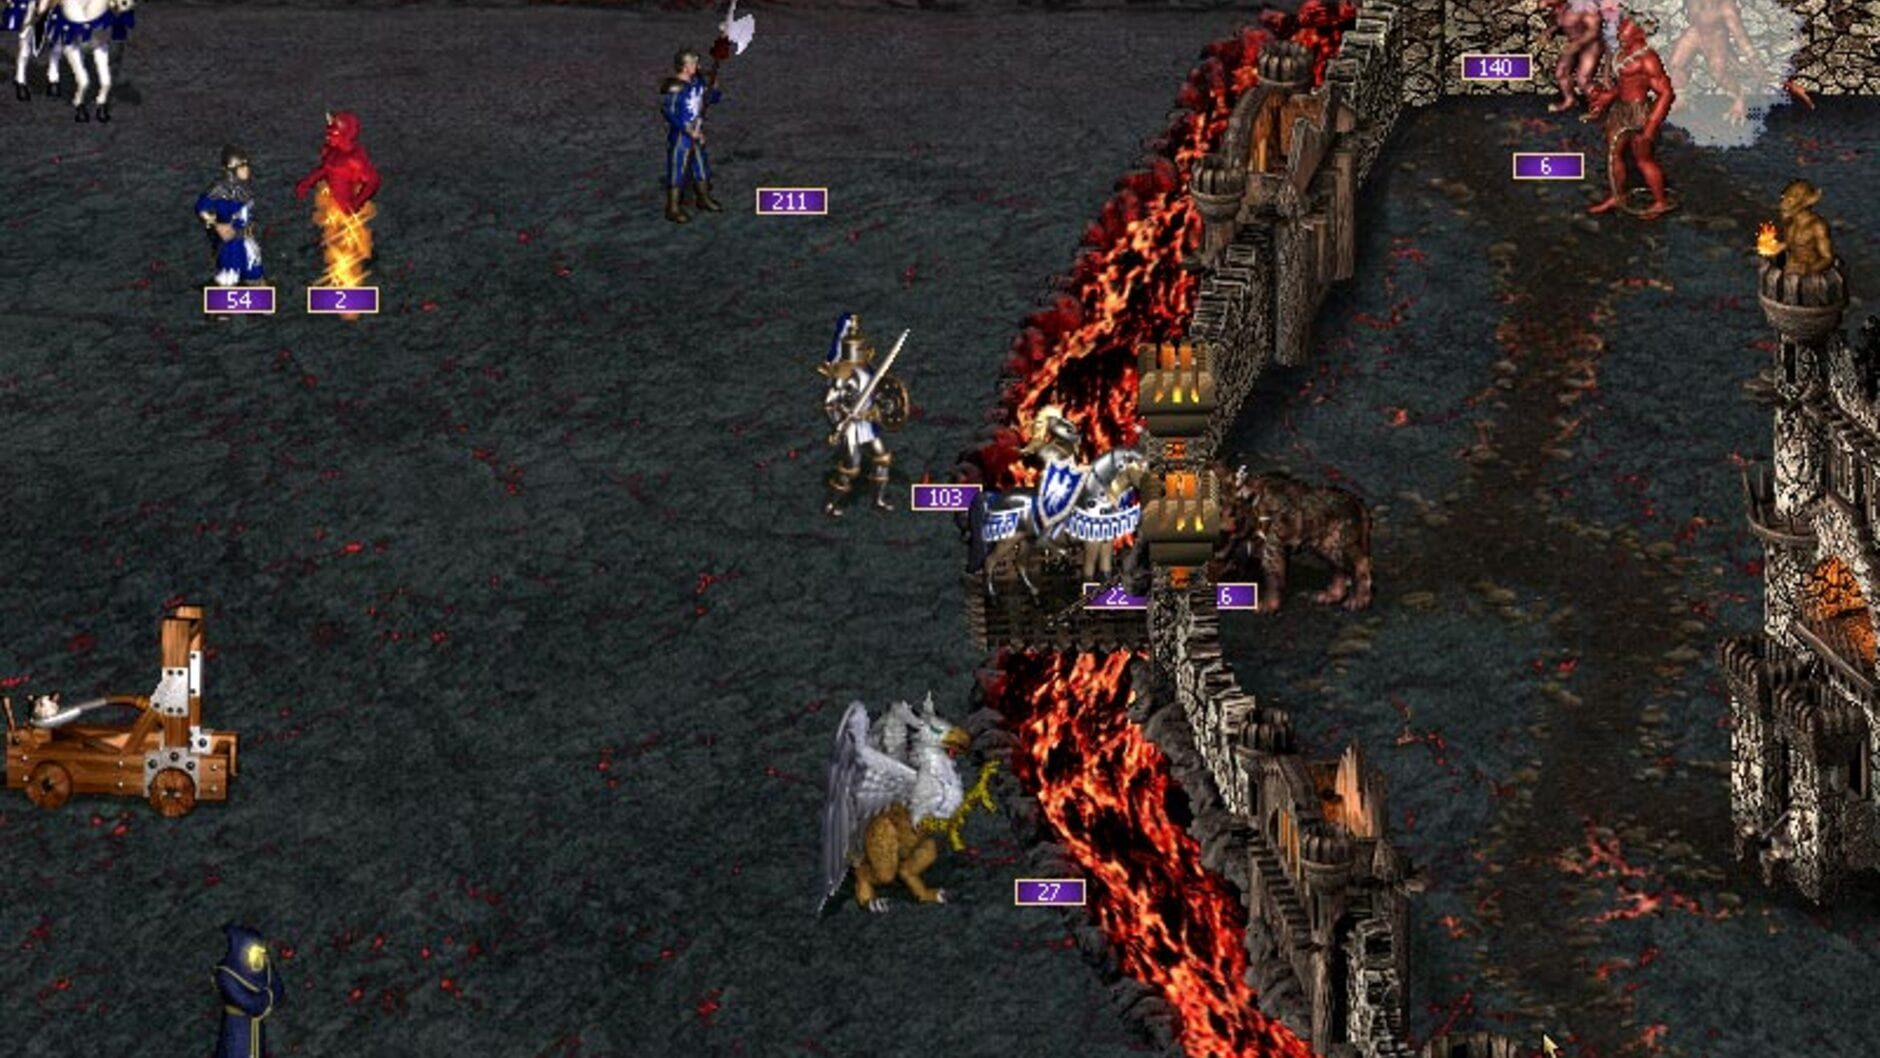 Heroes of Might and Magic III: The Restoration of Erathia - 4